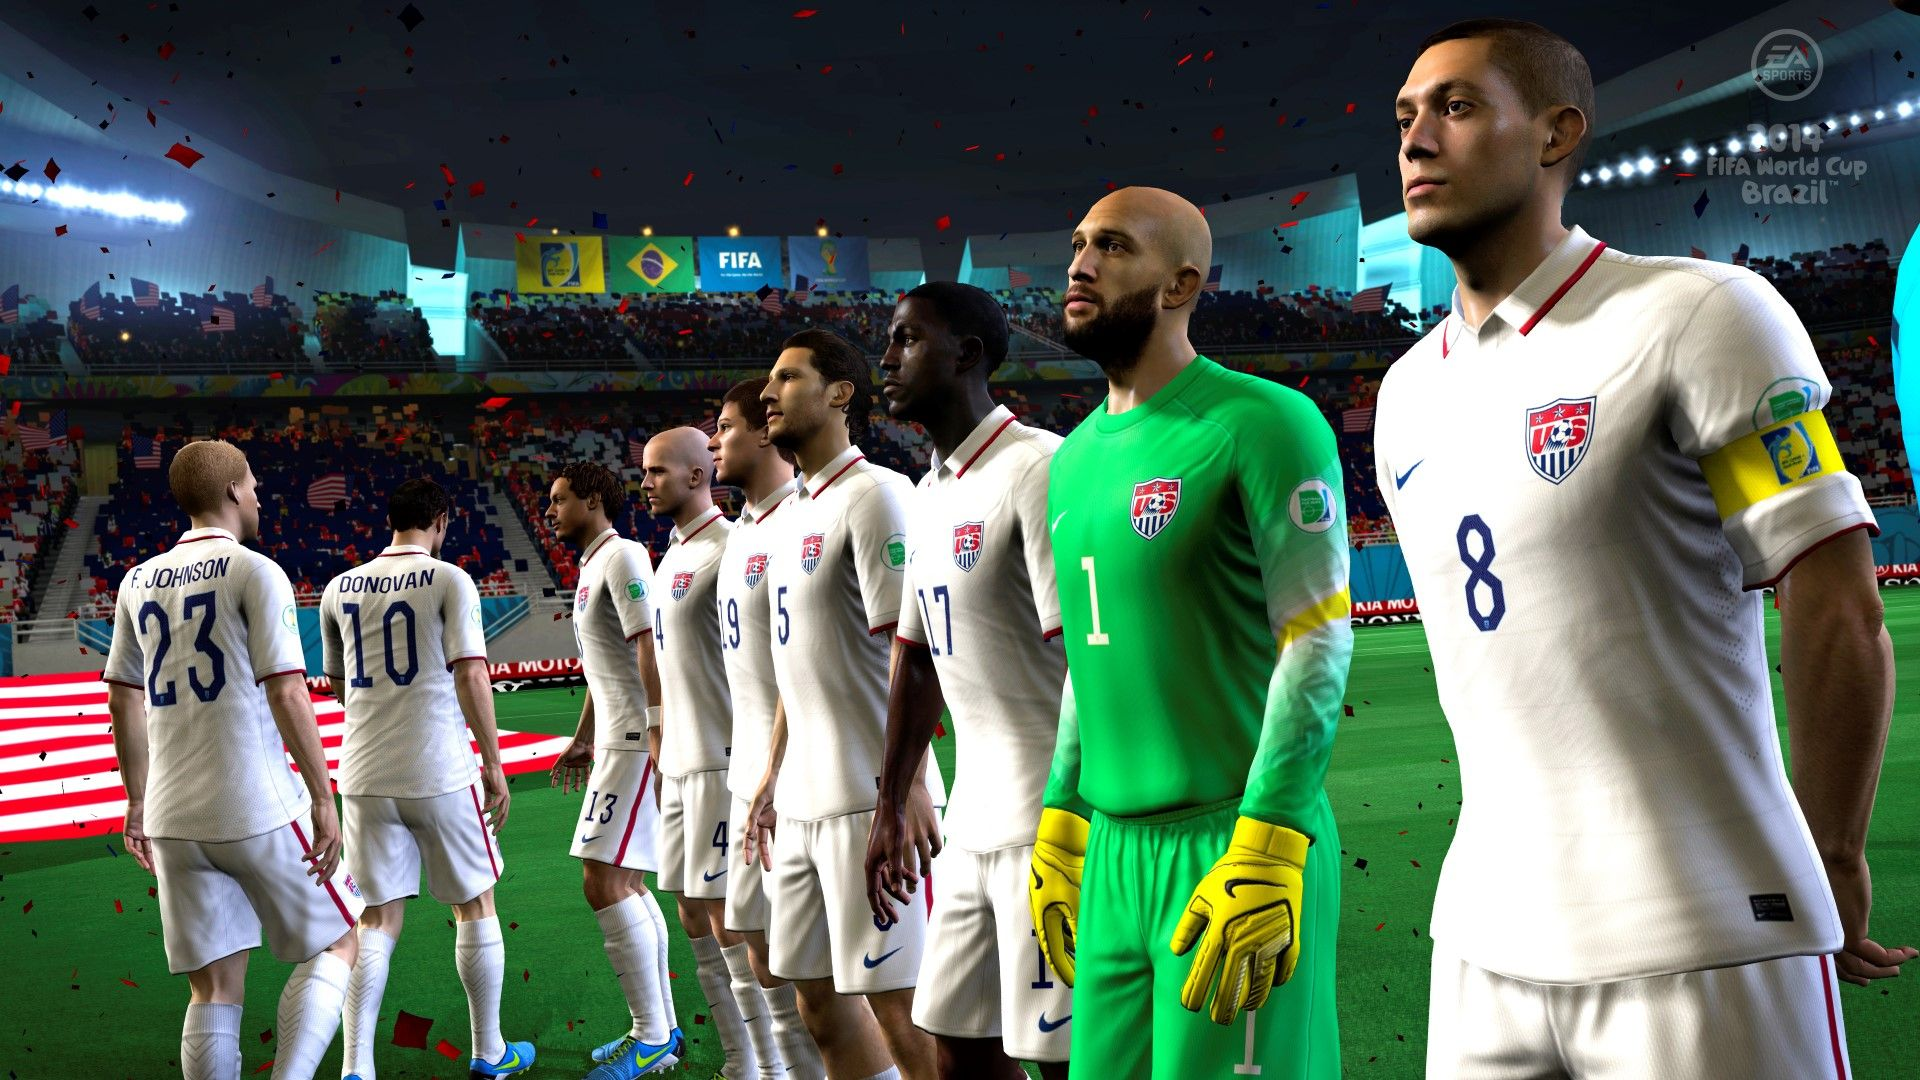 Fifa World Cup 2014 Game World Cup Games Fifa Fifa 2014 World Cup